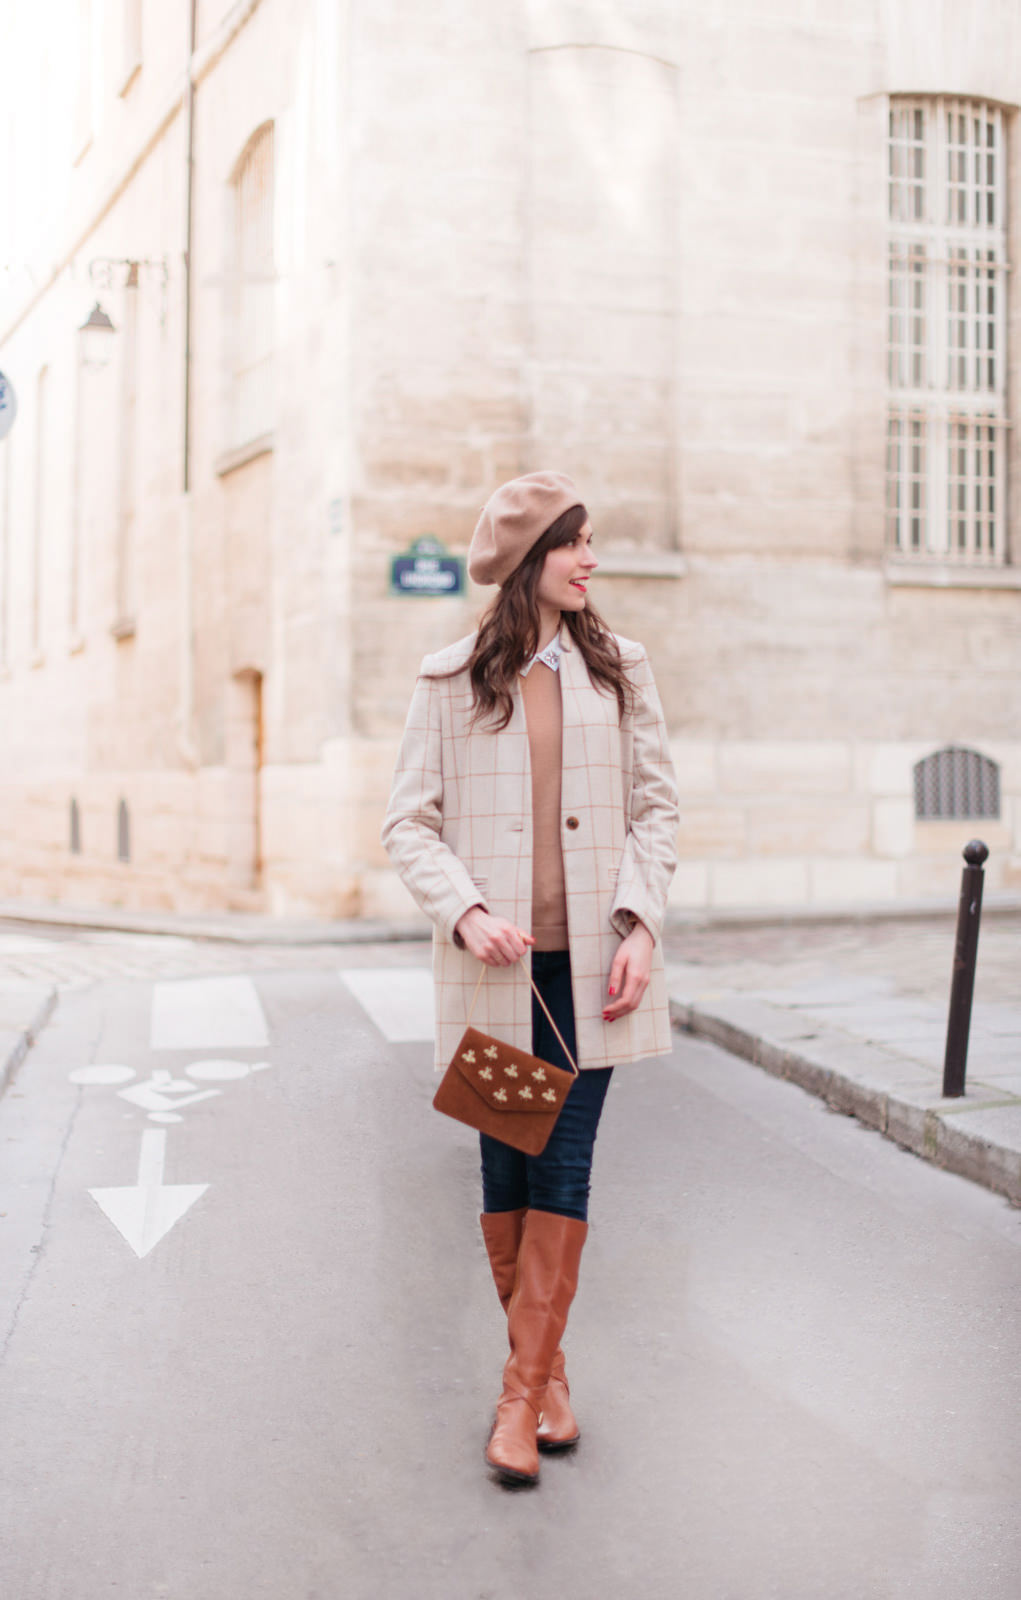 Blog-Mode-And-The-City-Looks-Porter-Le-Beret-7ok